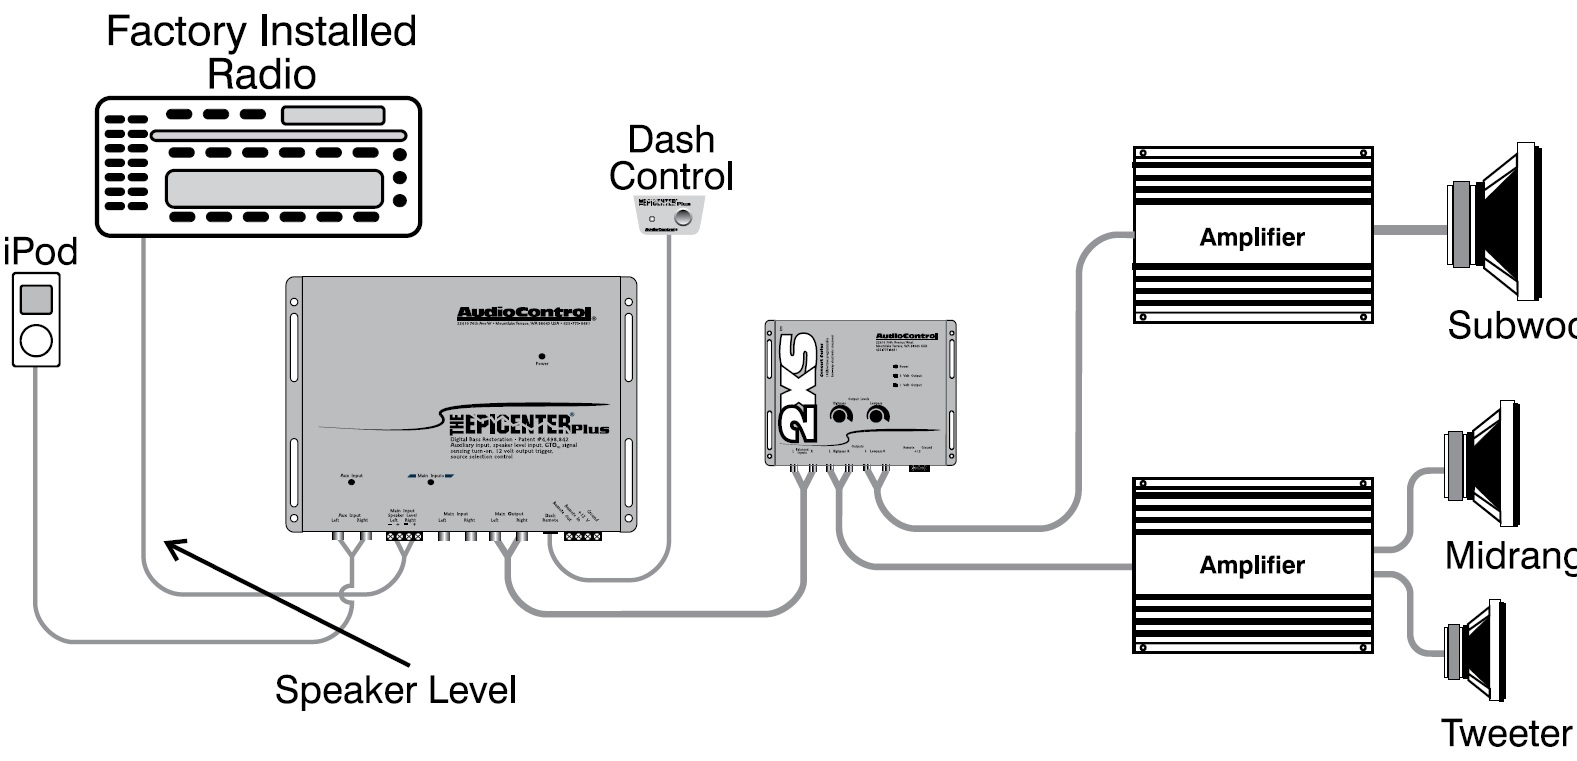 epicenterplus_simpleinstall car application diagrams audiocontrol wiring diagram for car audio at fashall.co